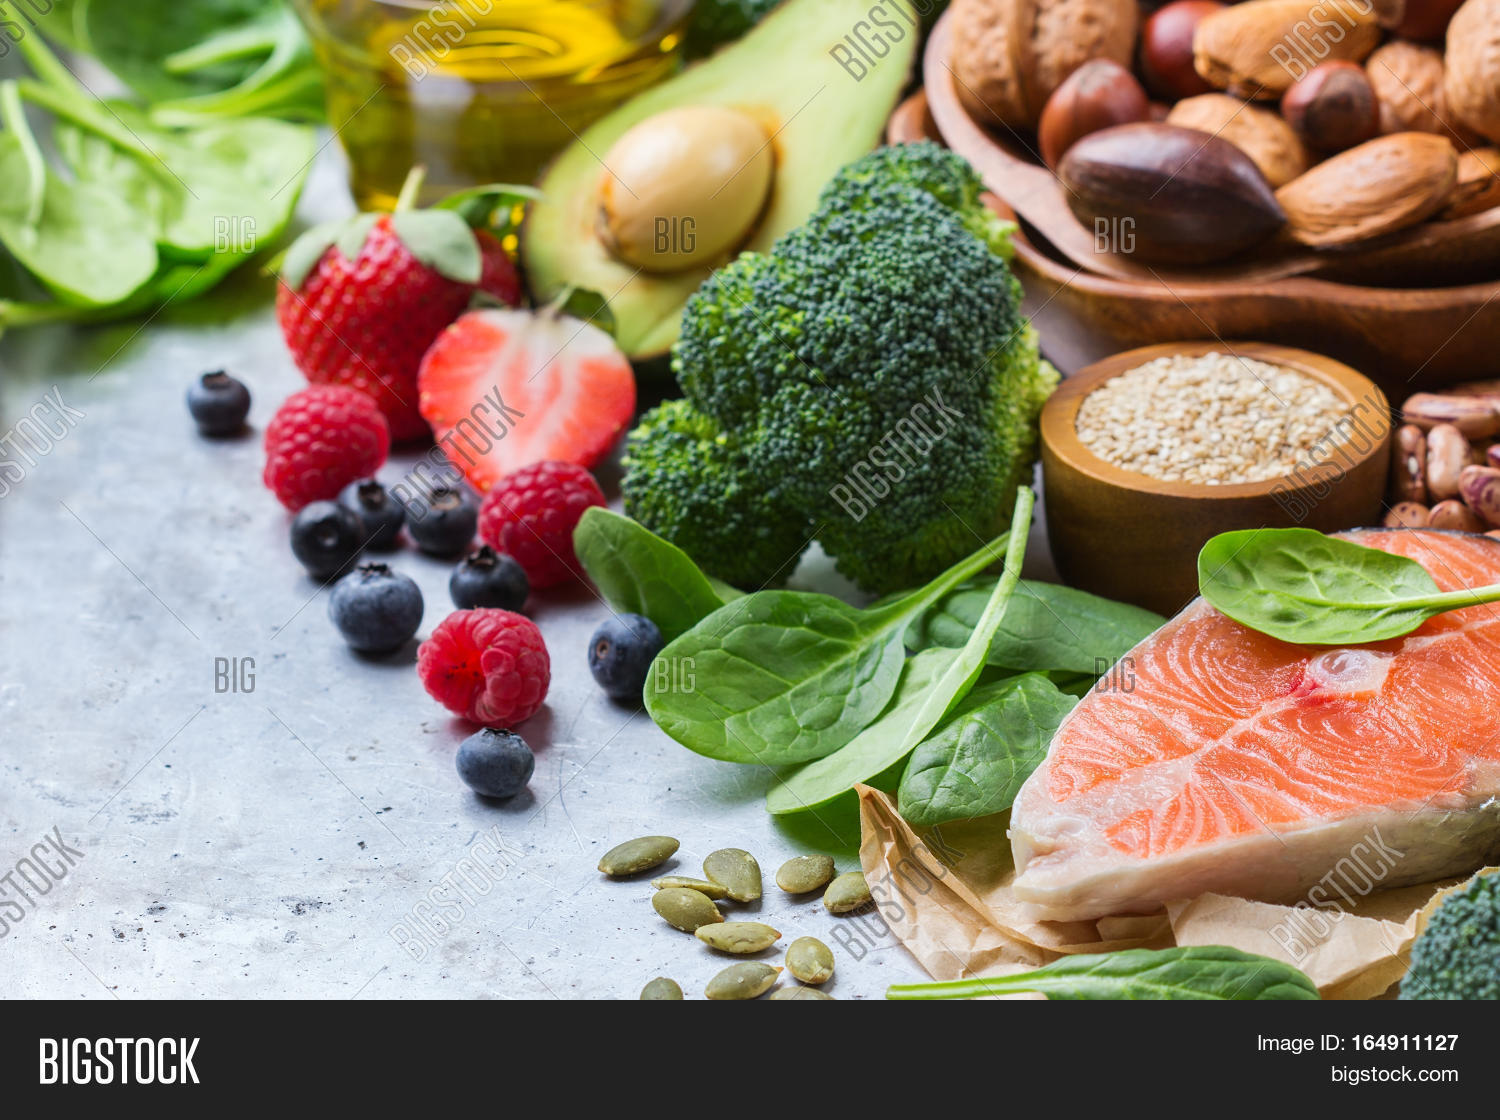 Selection Healthy Food Image & Photo (Free Trial) | Bigstock